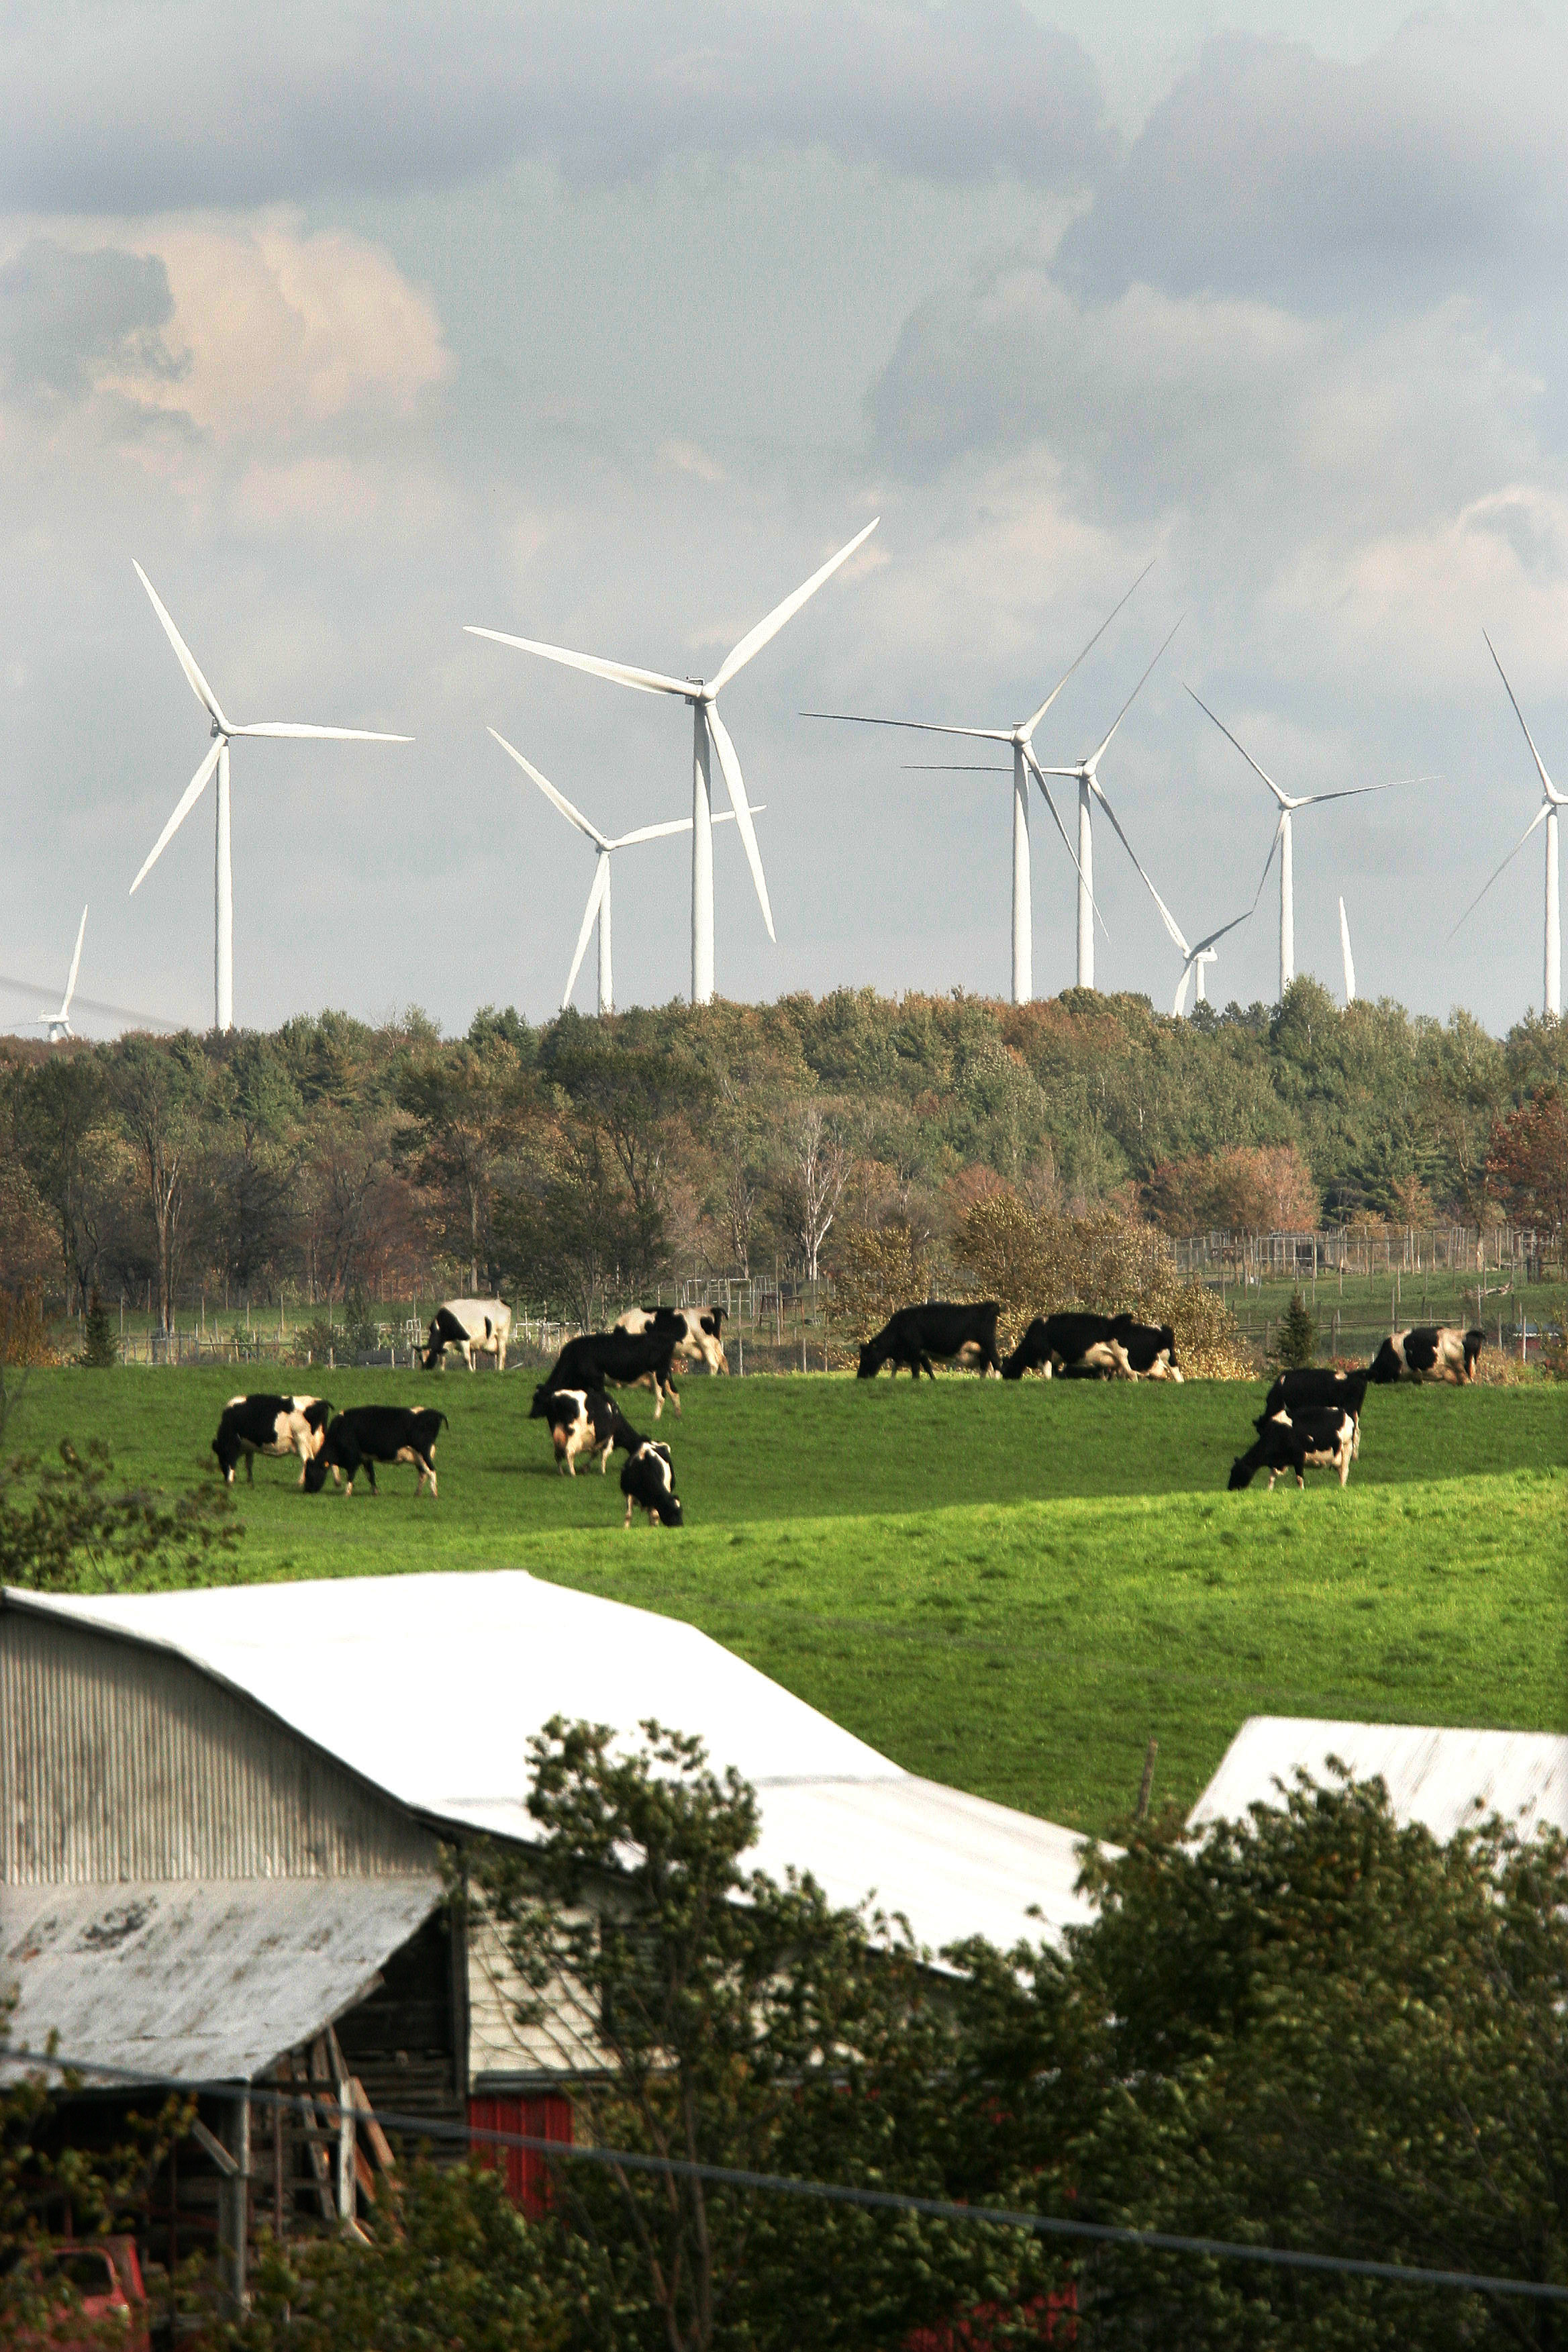 Dairy cows are dwarfed by wind turbines on his farm along New York State Route 177 near Lowville, N.Y., on Sunday, Sept. 24, 2006. Part of the Maple Ridge Wind Farm, it will have a projected completion of 120-wind turbines that is expected to generate 198mw of power. The official dedication of the project is Tuesday, Sept. 26th. (Photos by-Michael Okoniewski)